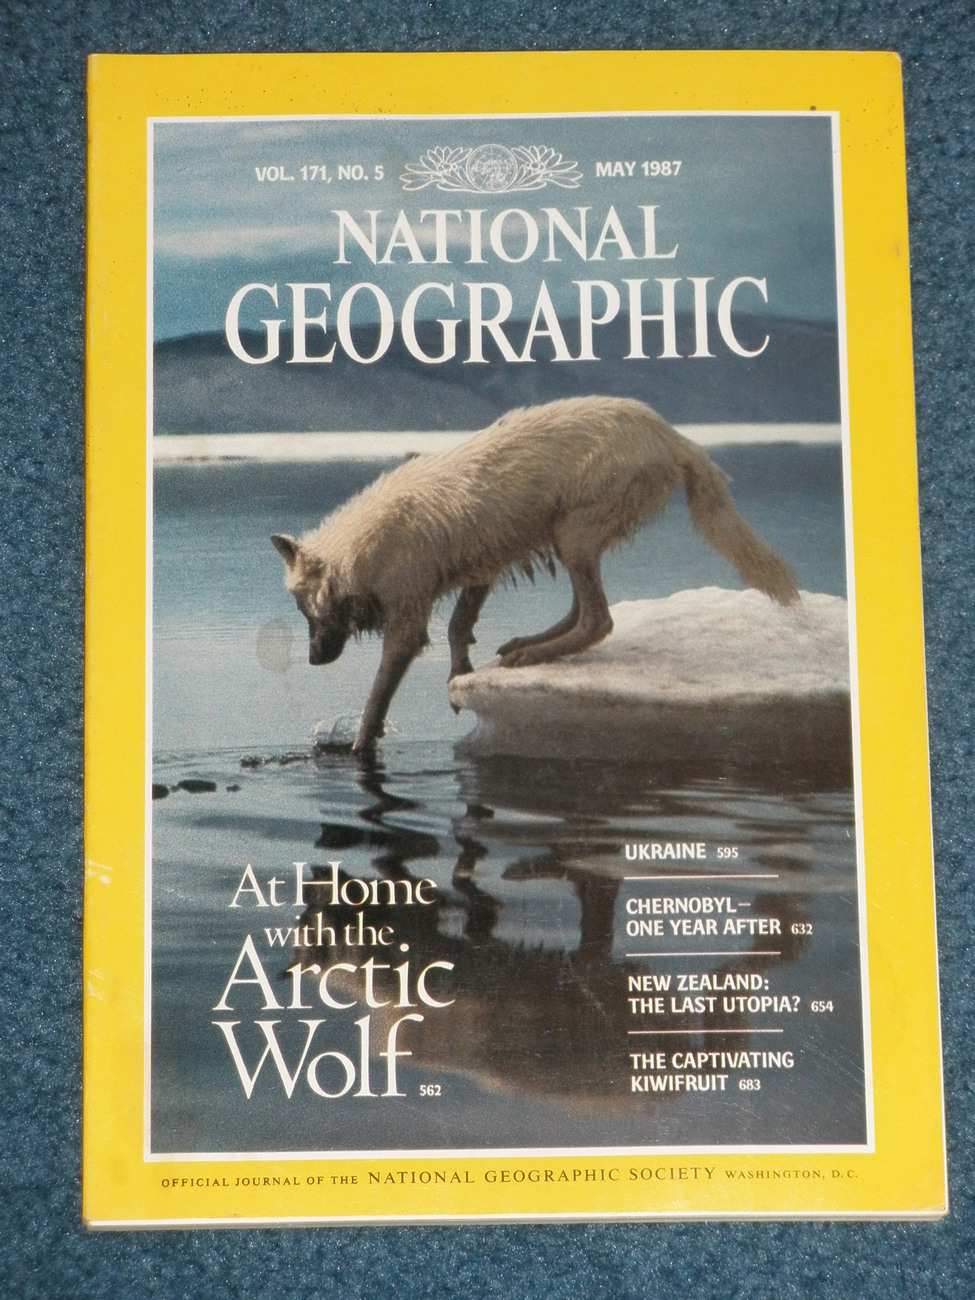 National Geographic stories take you on a journey thats always enlightening often surprising and unfailingly fascinating